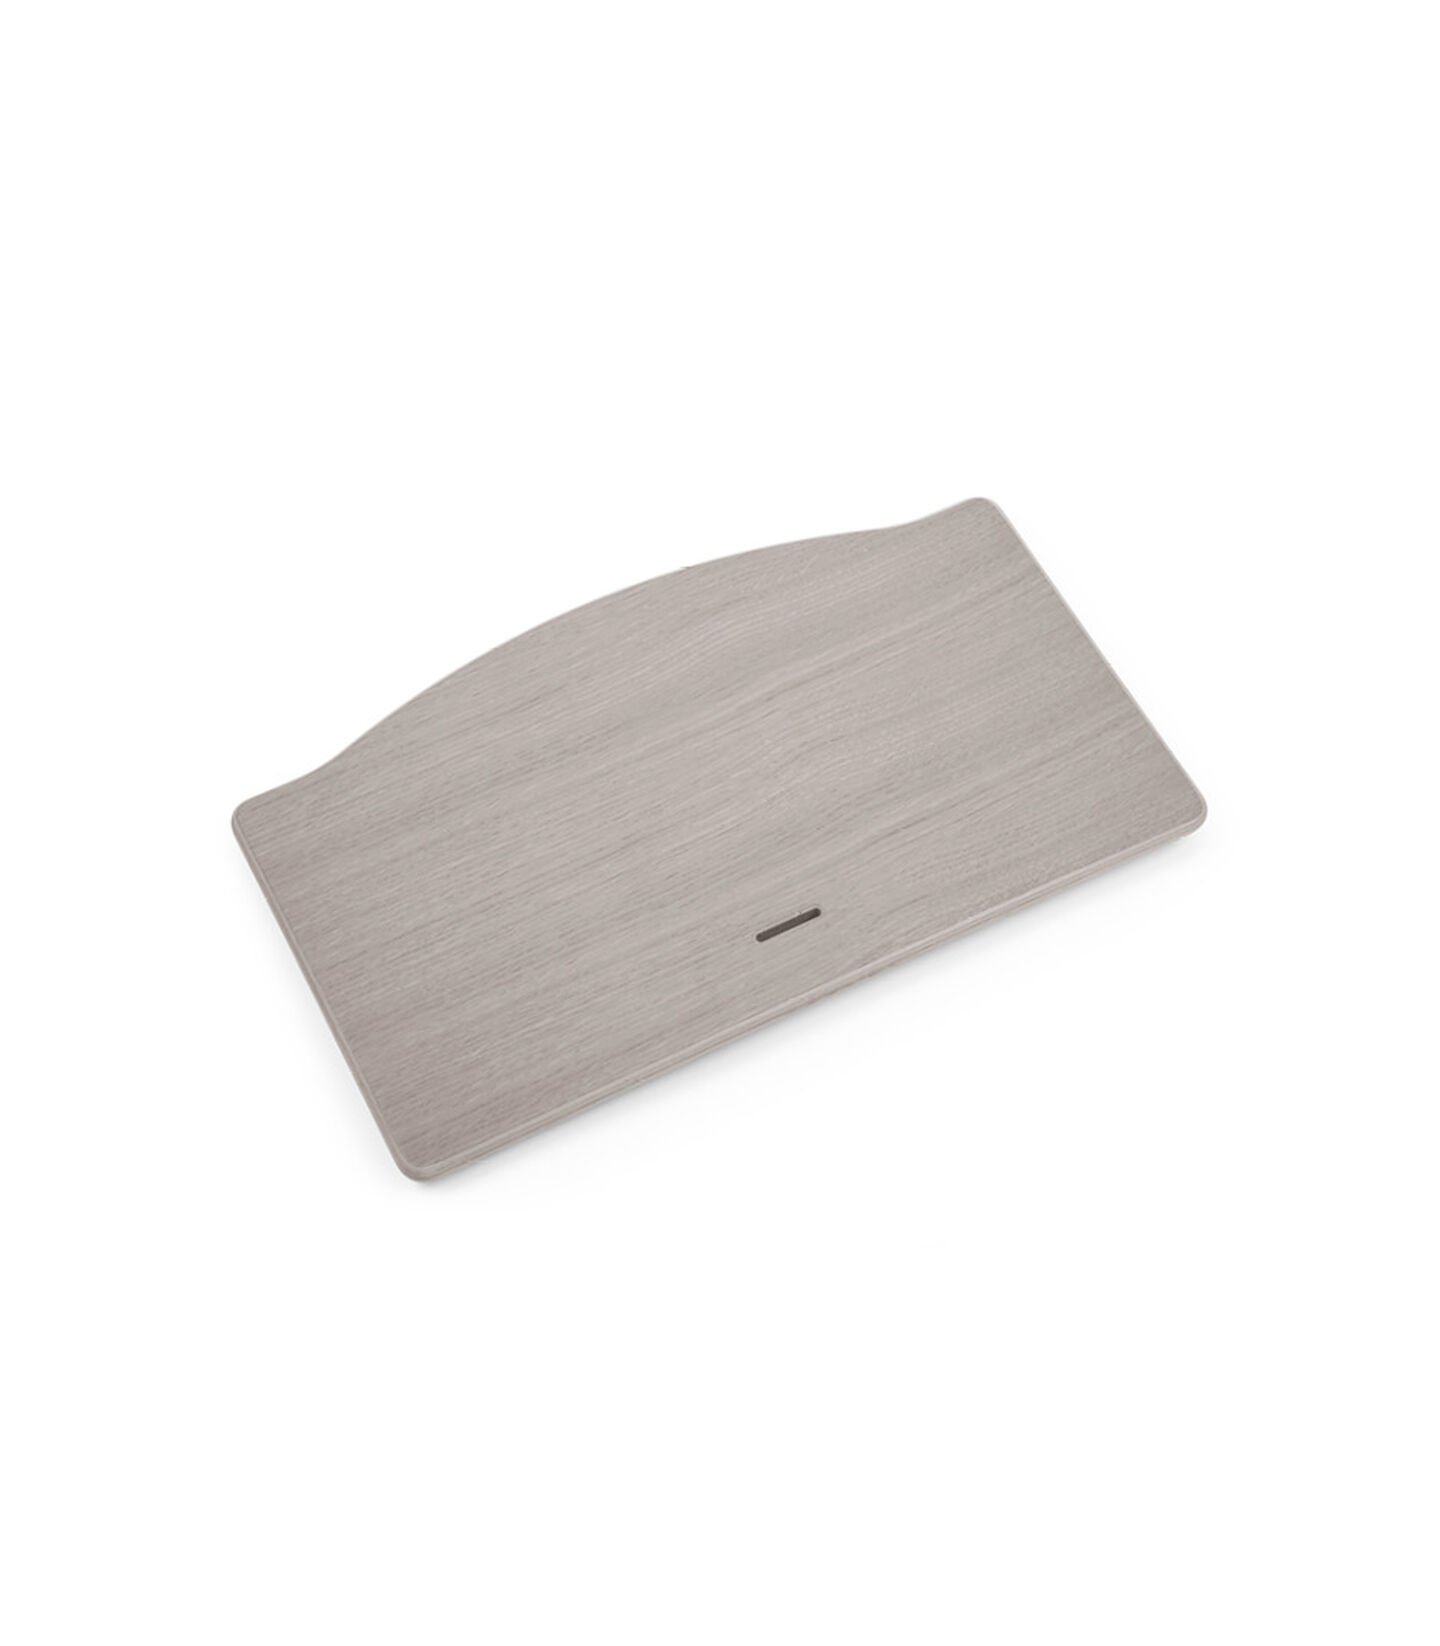 Tripp Trapp® Seatplate Oak Greywash, Oak Greywash, mainview view 2